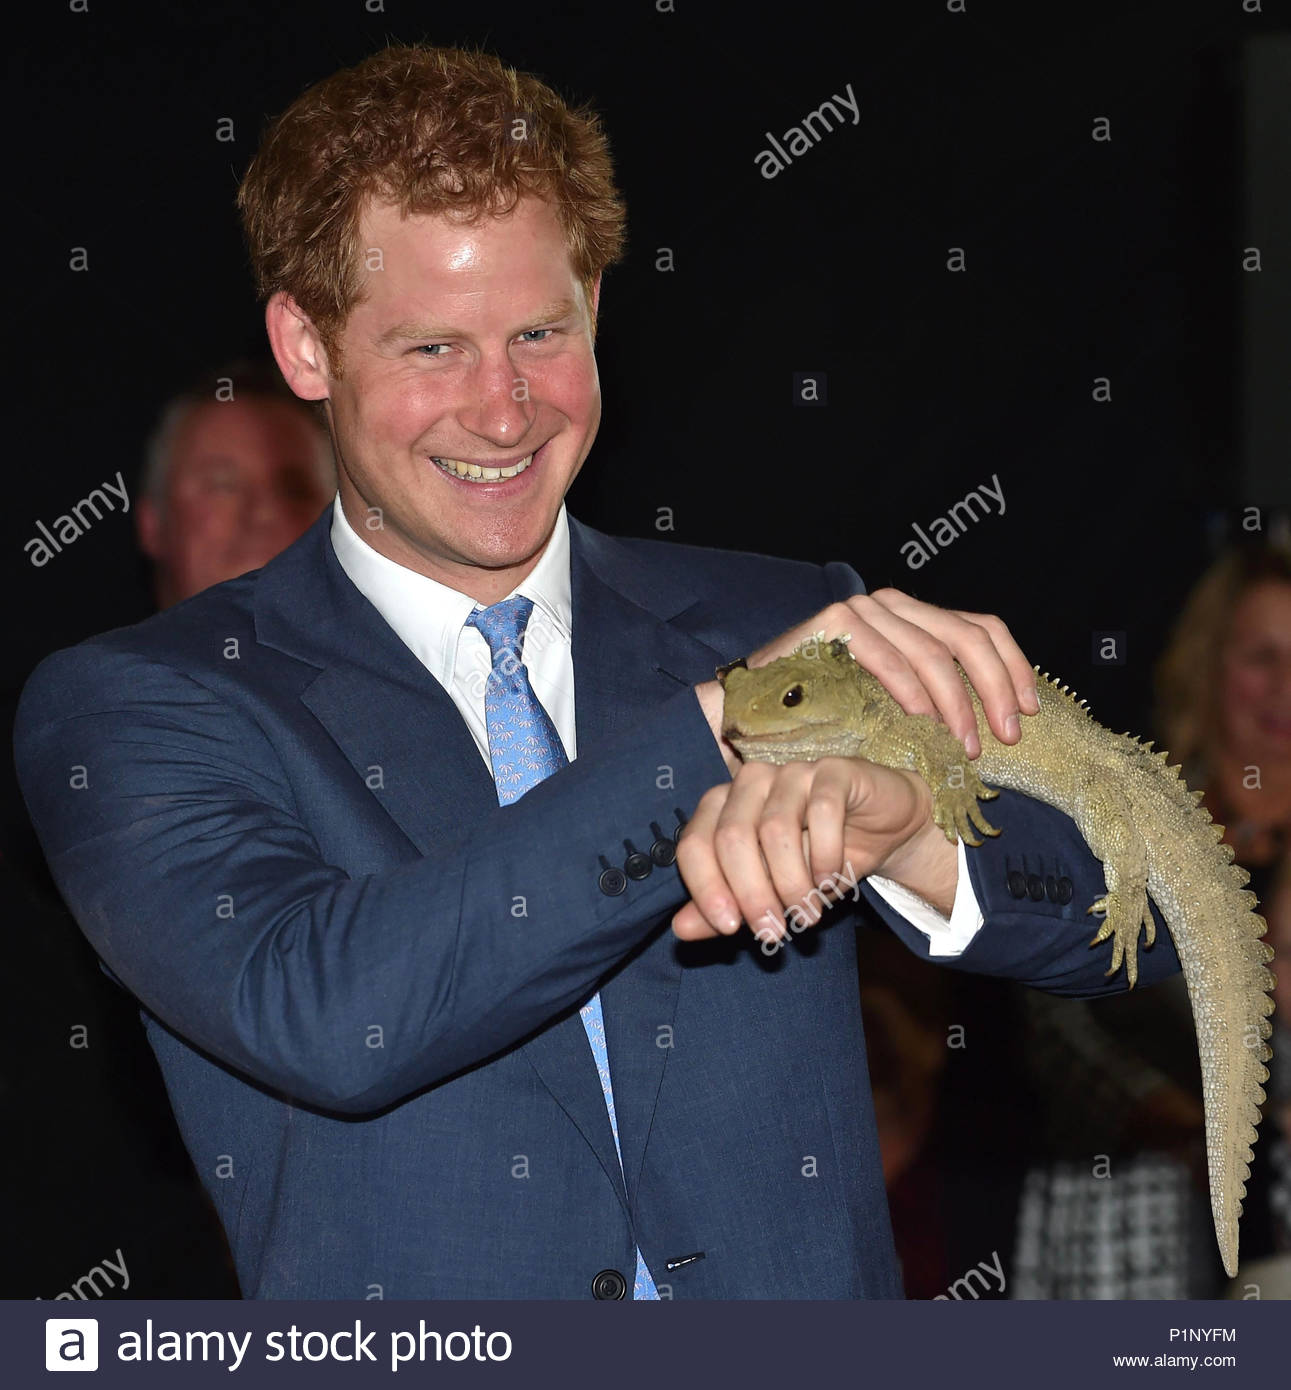 Prince Harry Receives A Ngai Tahi Iwi Welcome And Meets Henry The Tuatara At Invercargill Airport In New Zealand On May 10 2015